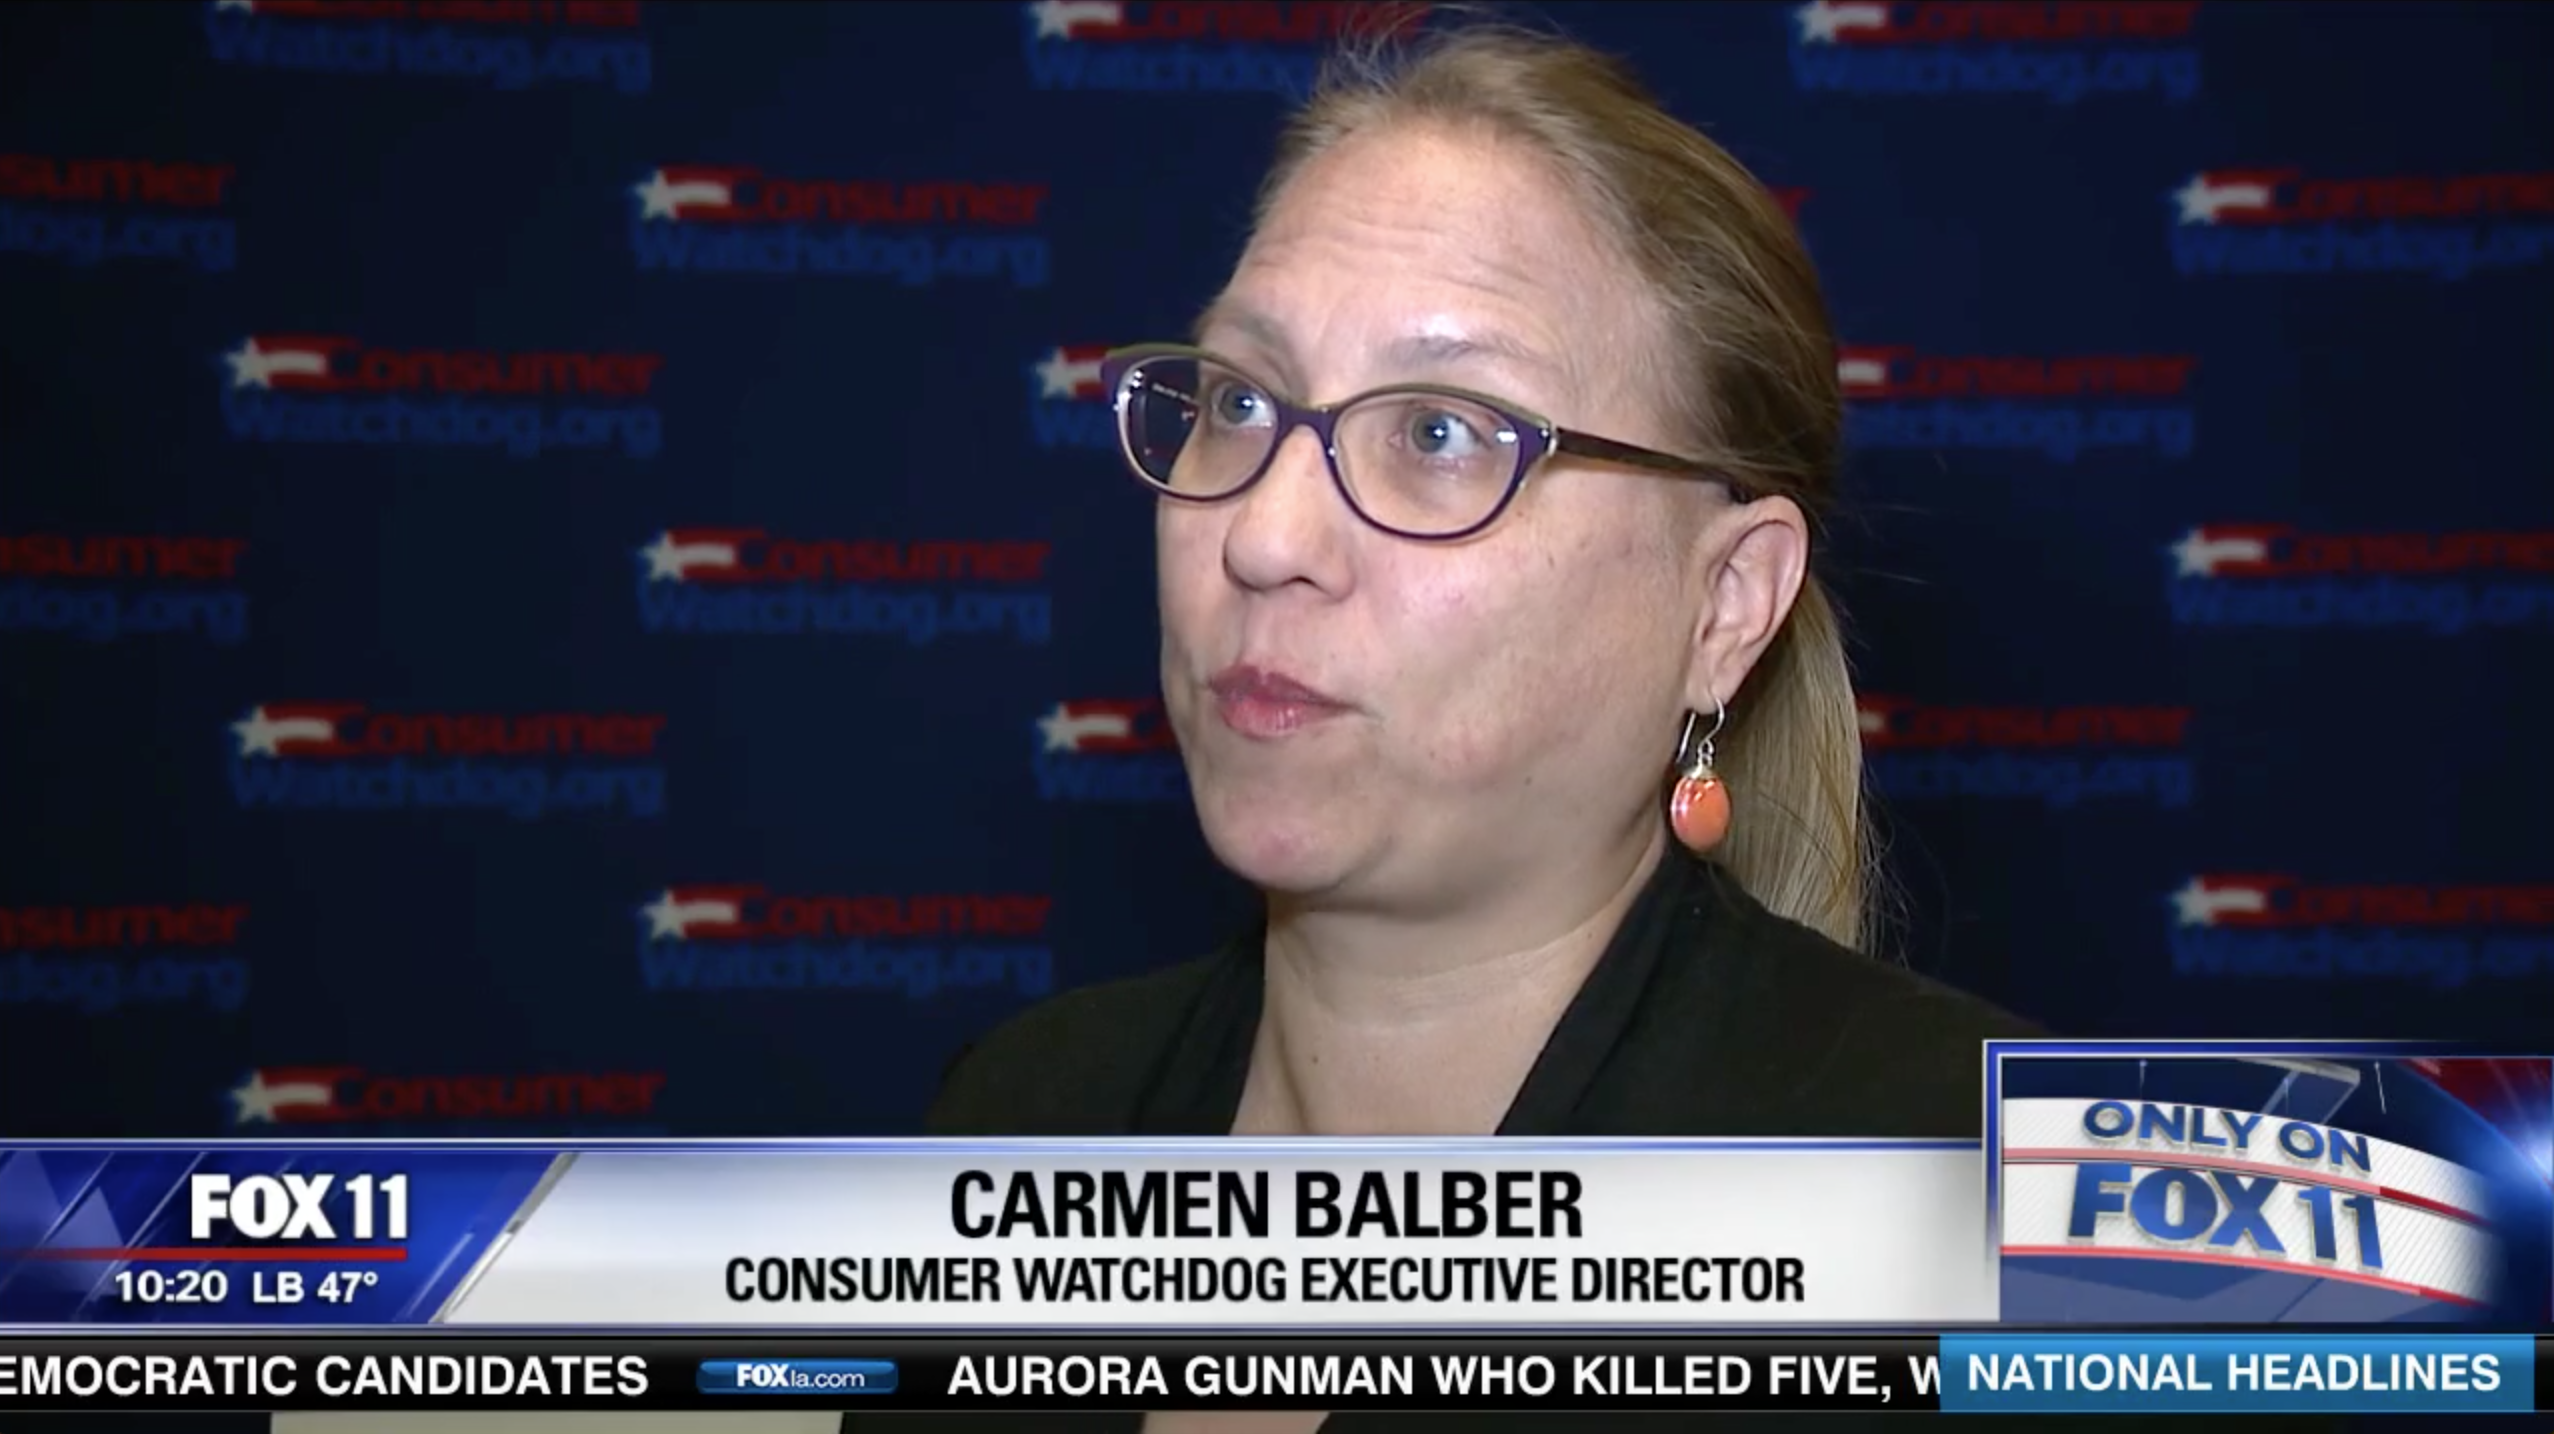 Carmen Balber, Executive Director of Consumer Watchdog